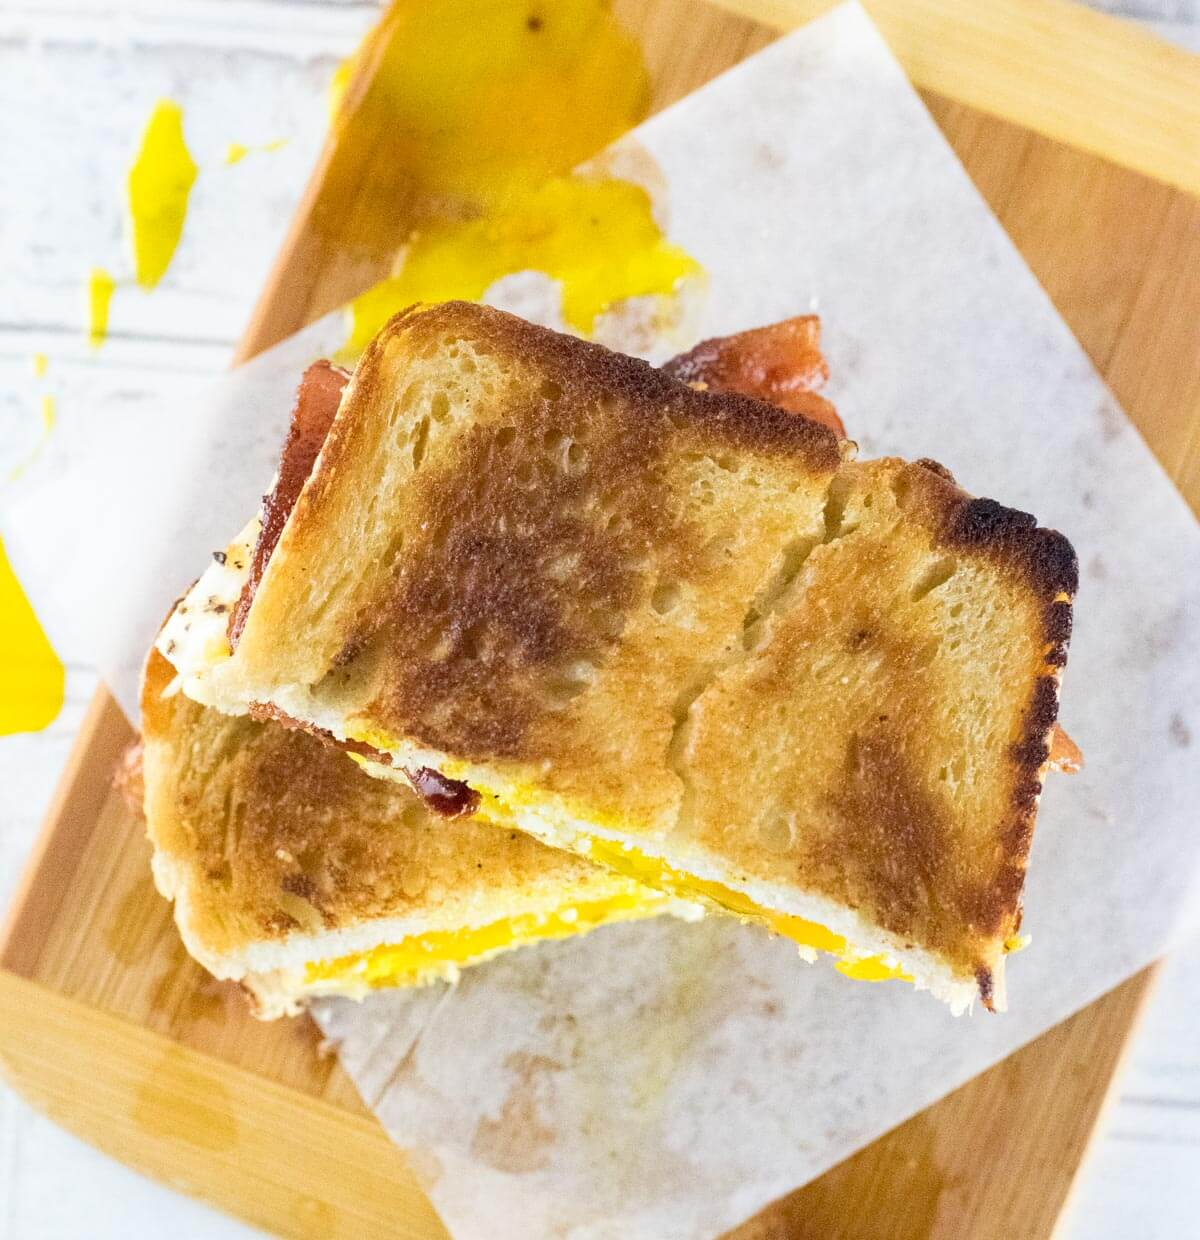 Best bread for egg sandwiches